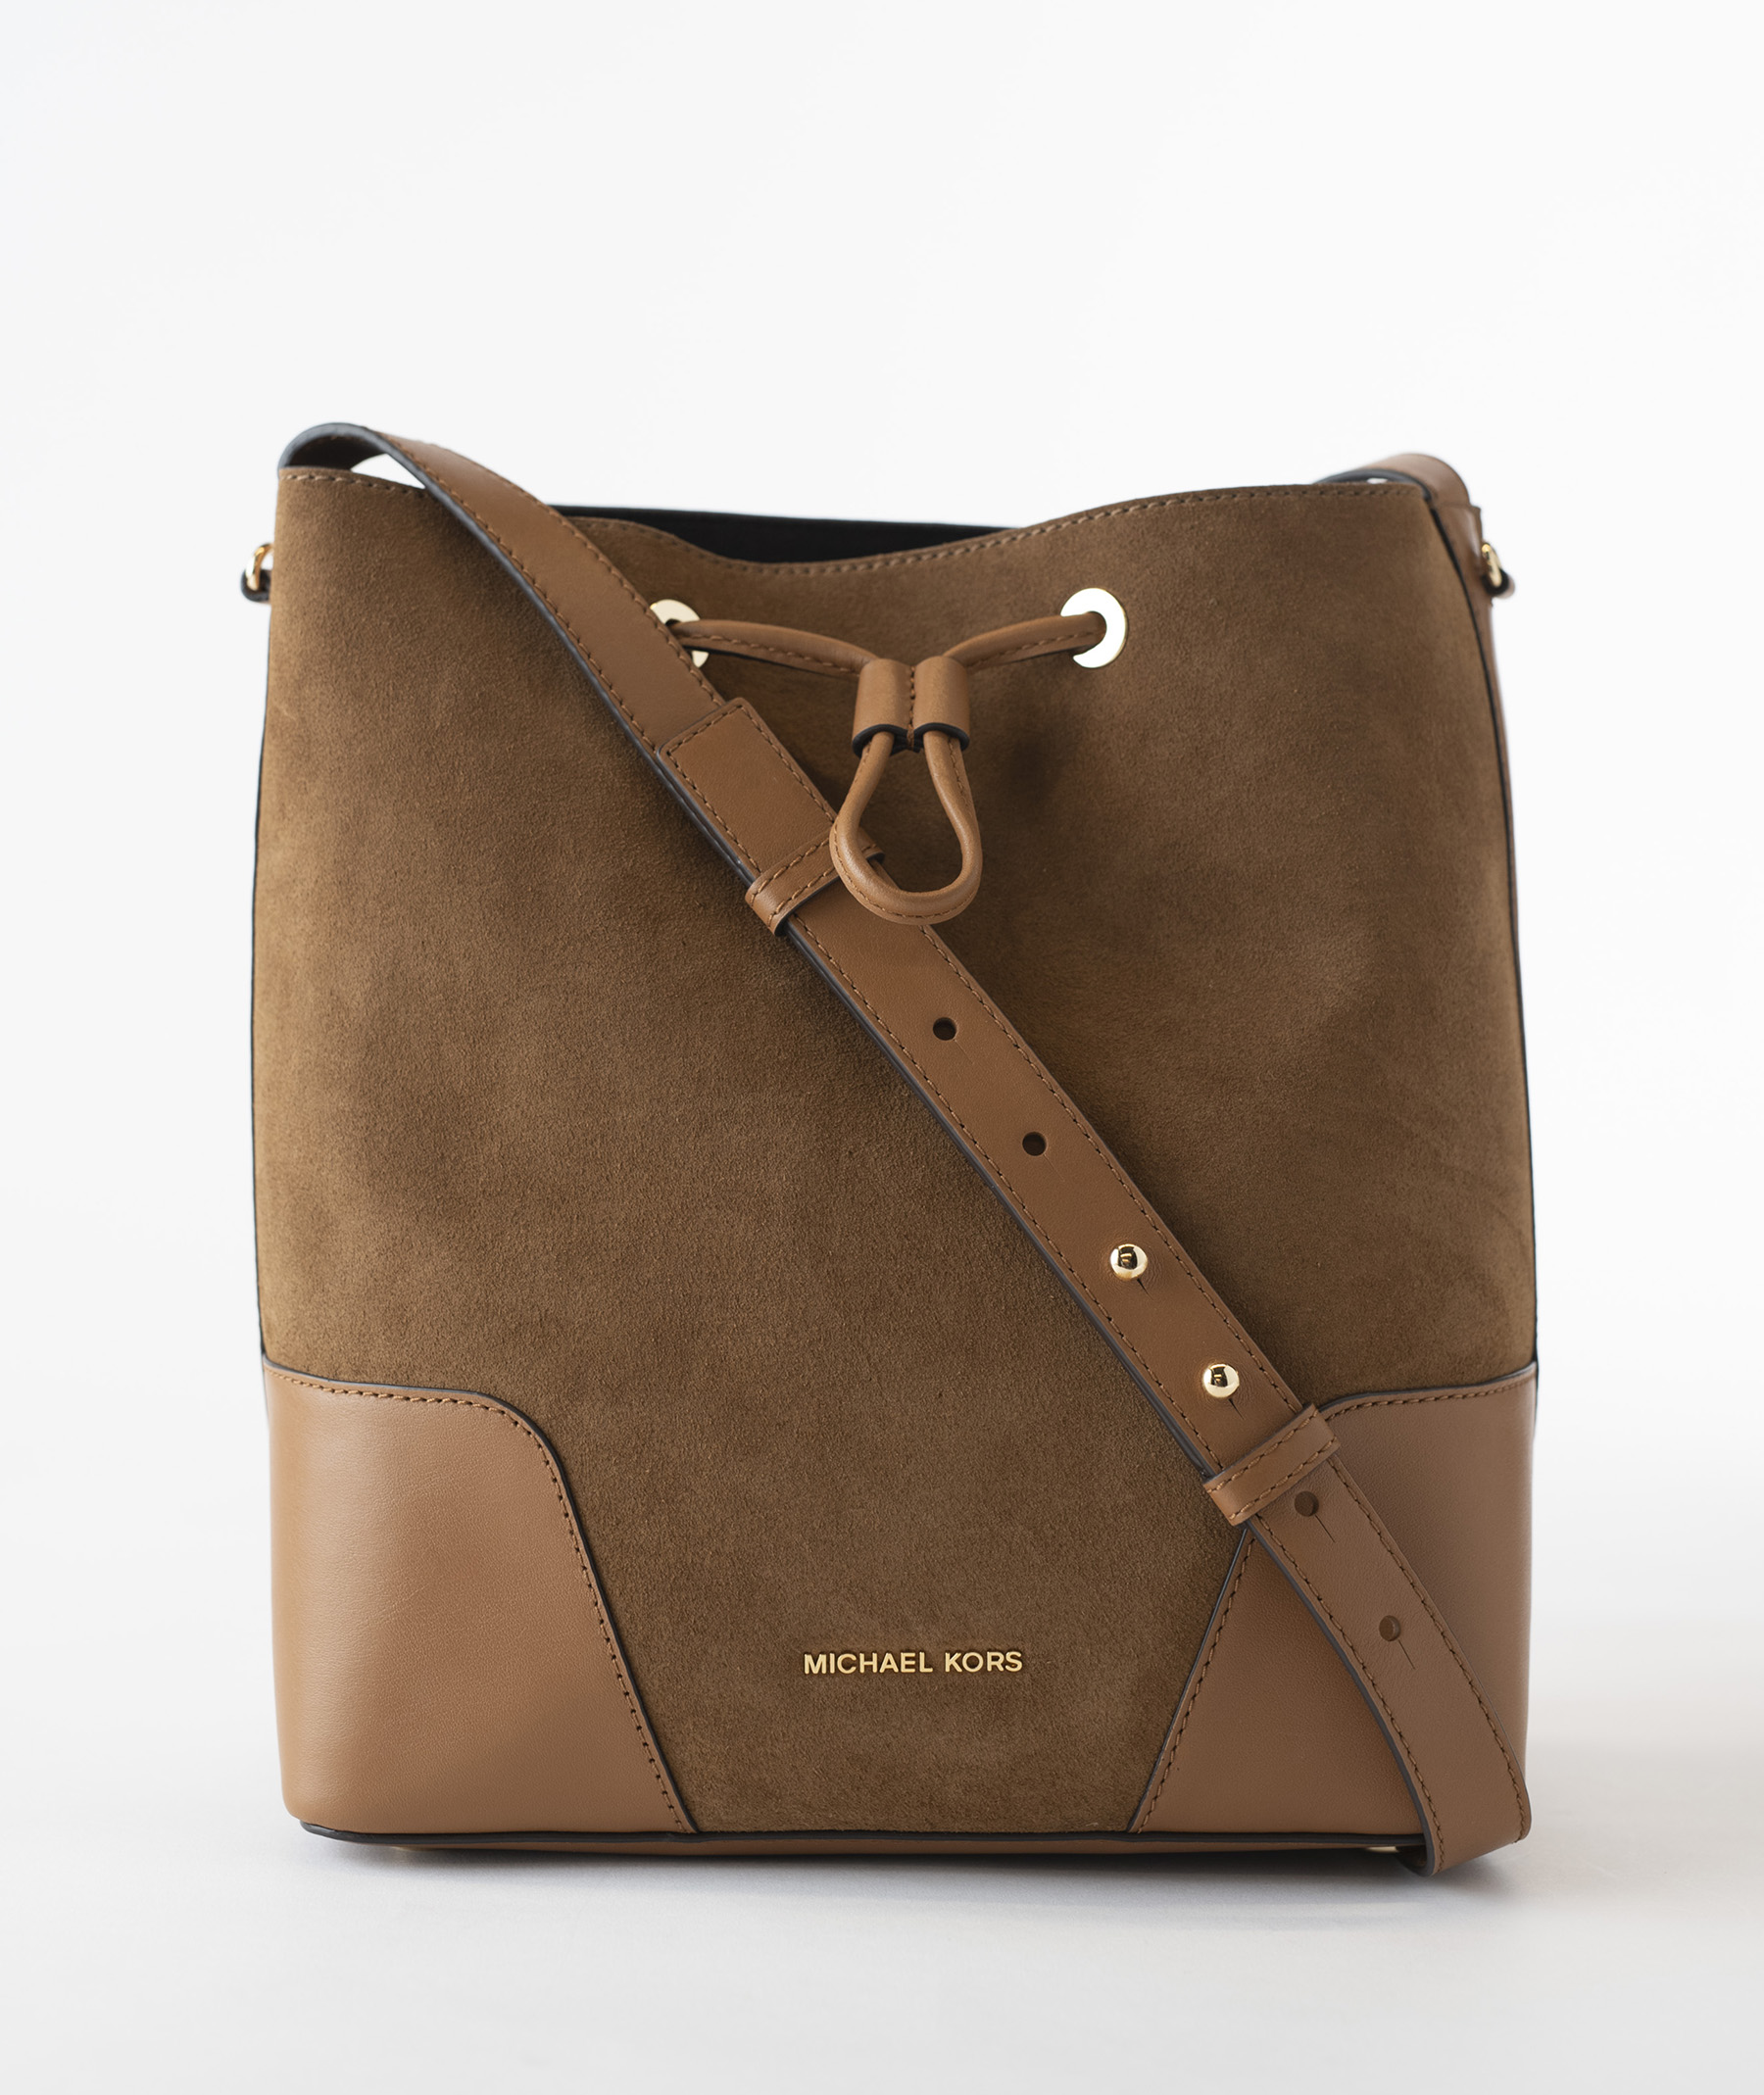 ded644f964f05 I m the Michael Kors Cary Medium Bucket Bag Leather. My slender design and  dark caramel color makes me the perfect purse to take with you this fall.